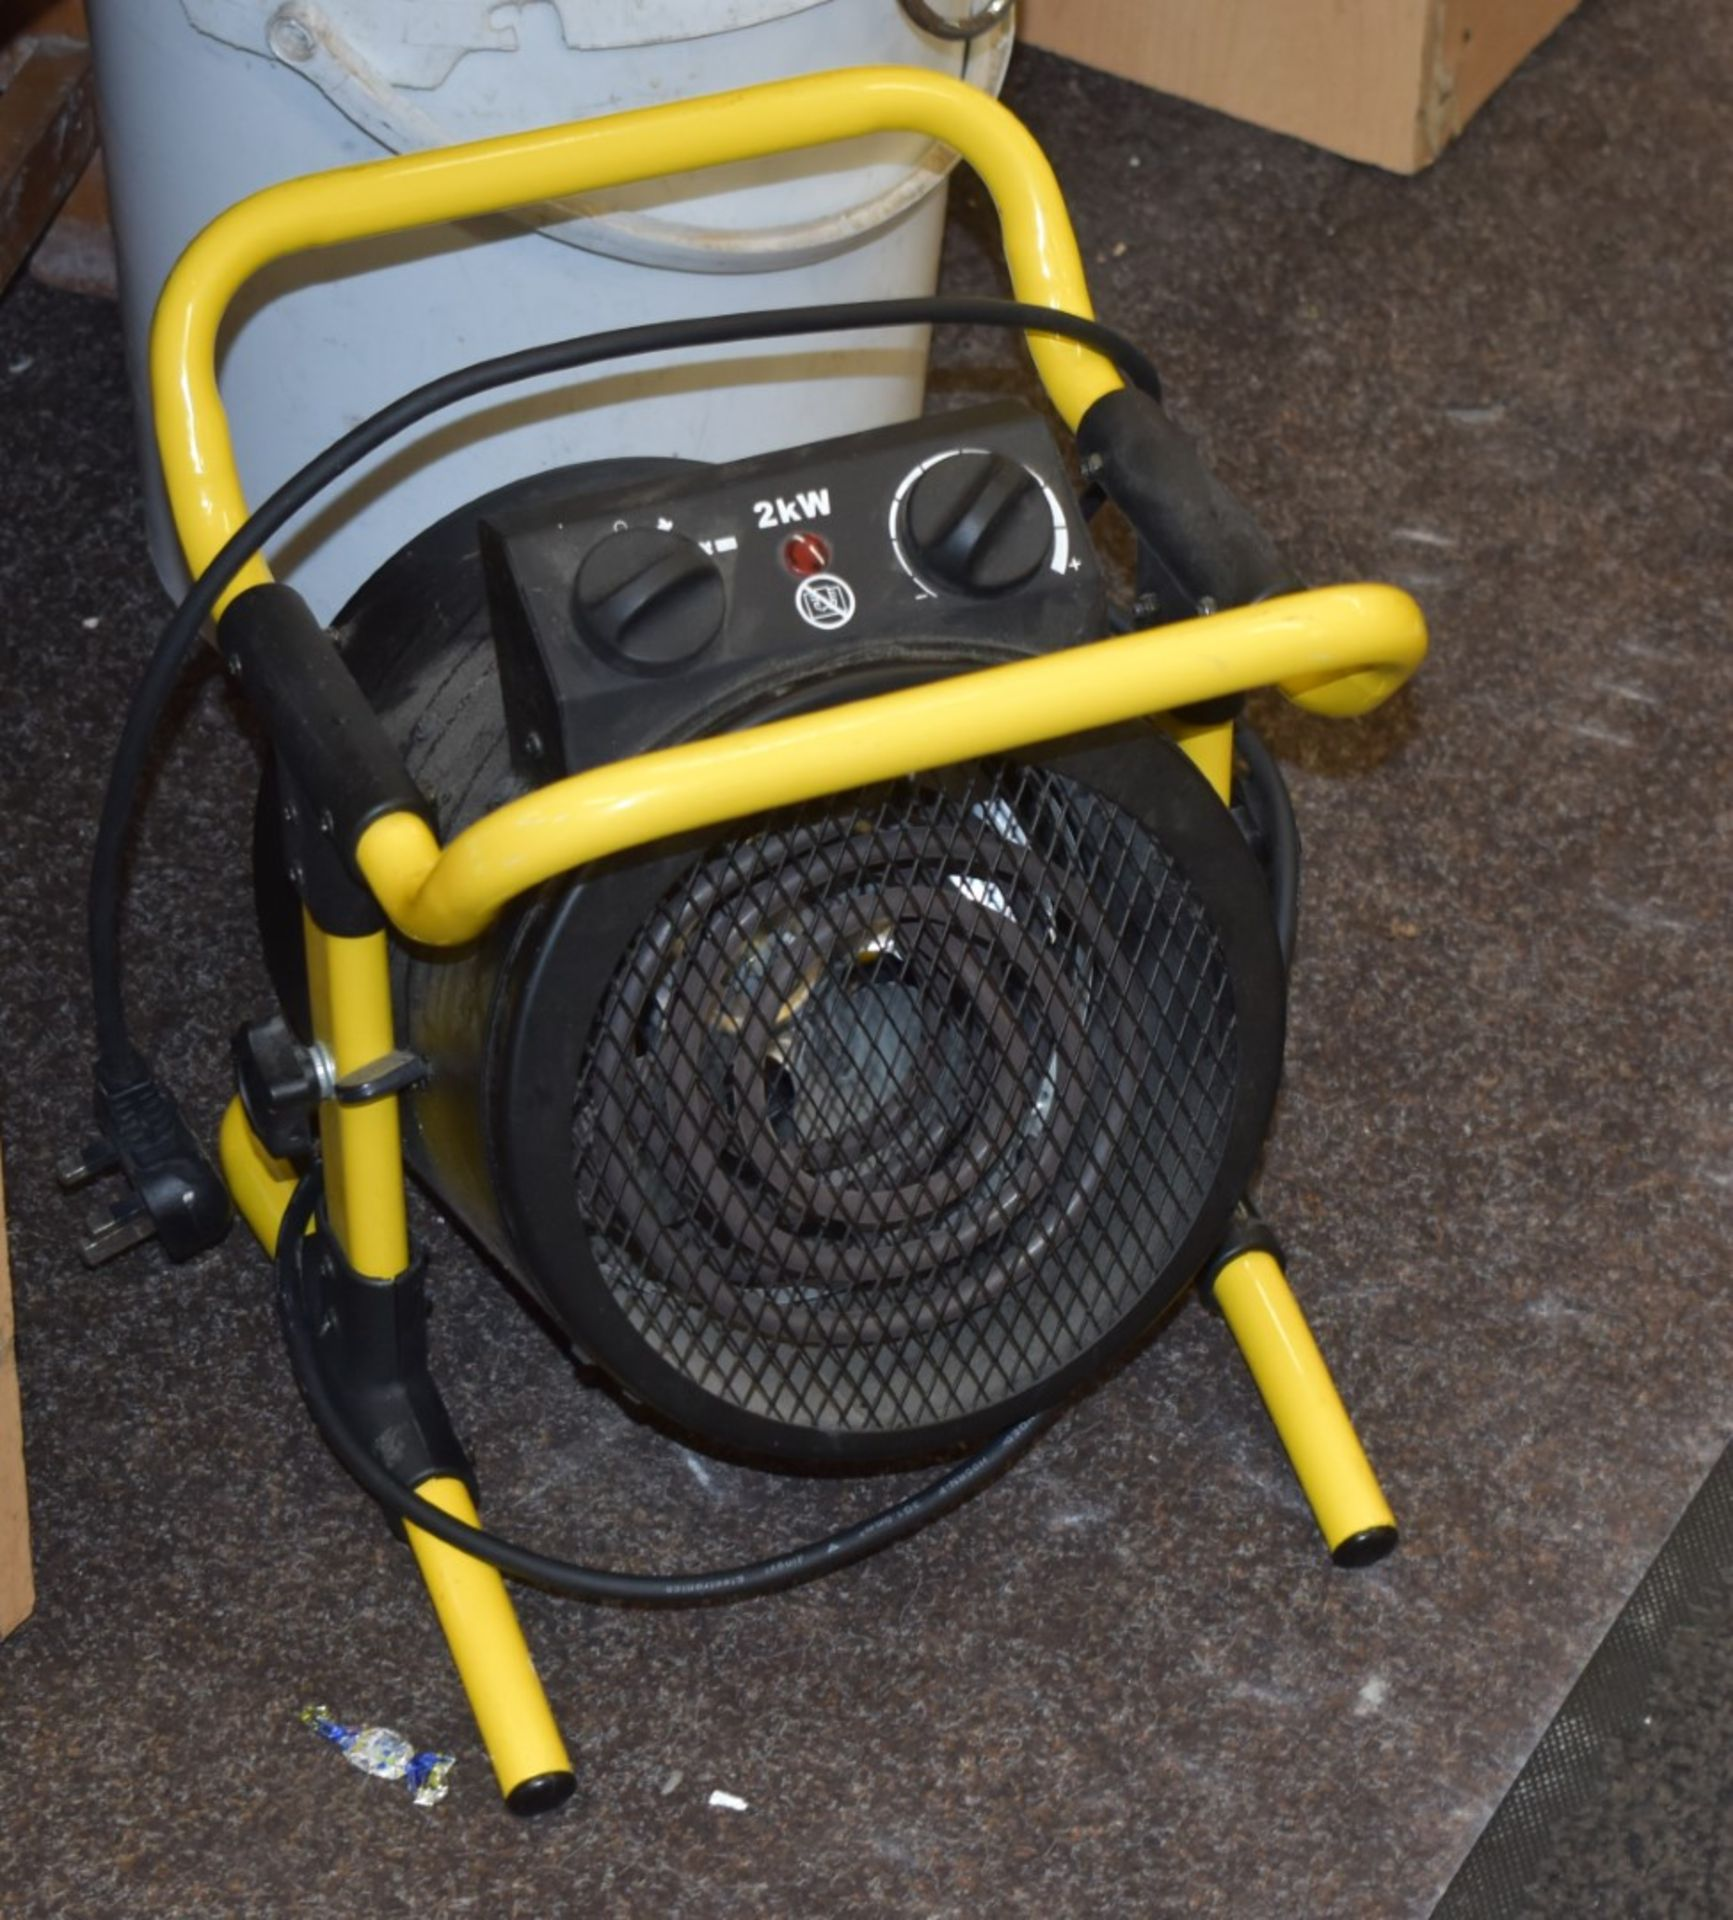 Lot 4292 - Assorted Collection of Items From Gym - Includes Upright Drinks Chiller, Multiple Wall Clocks,